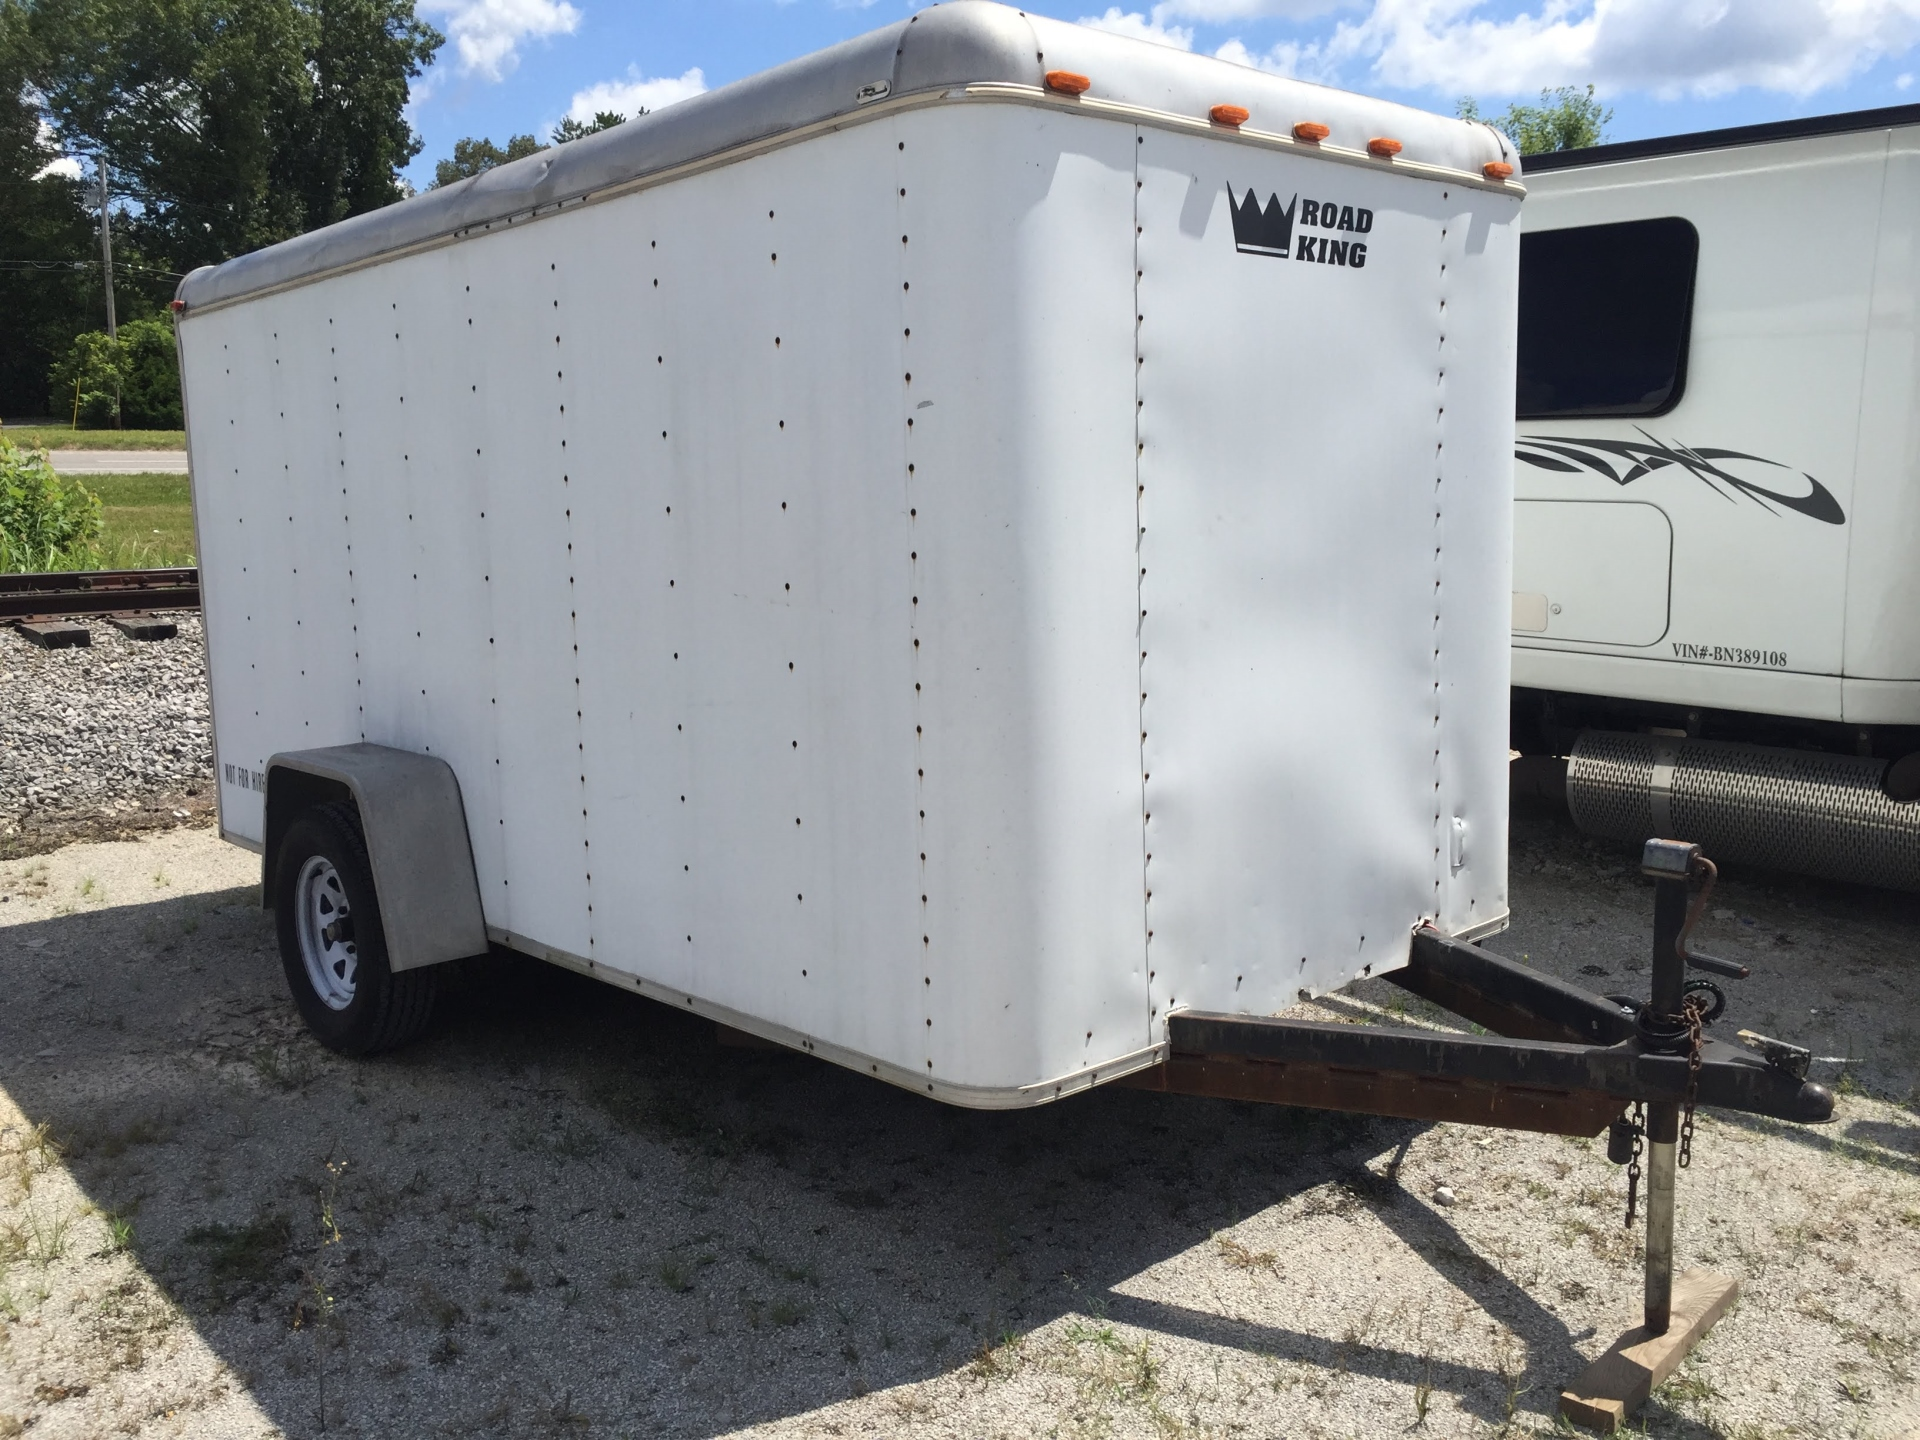 Road King 16' Enclosed Trailer